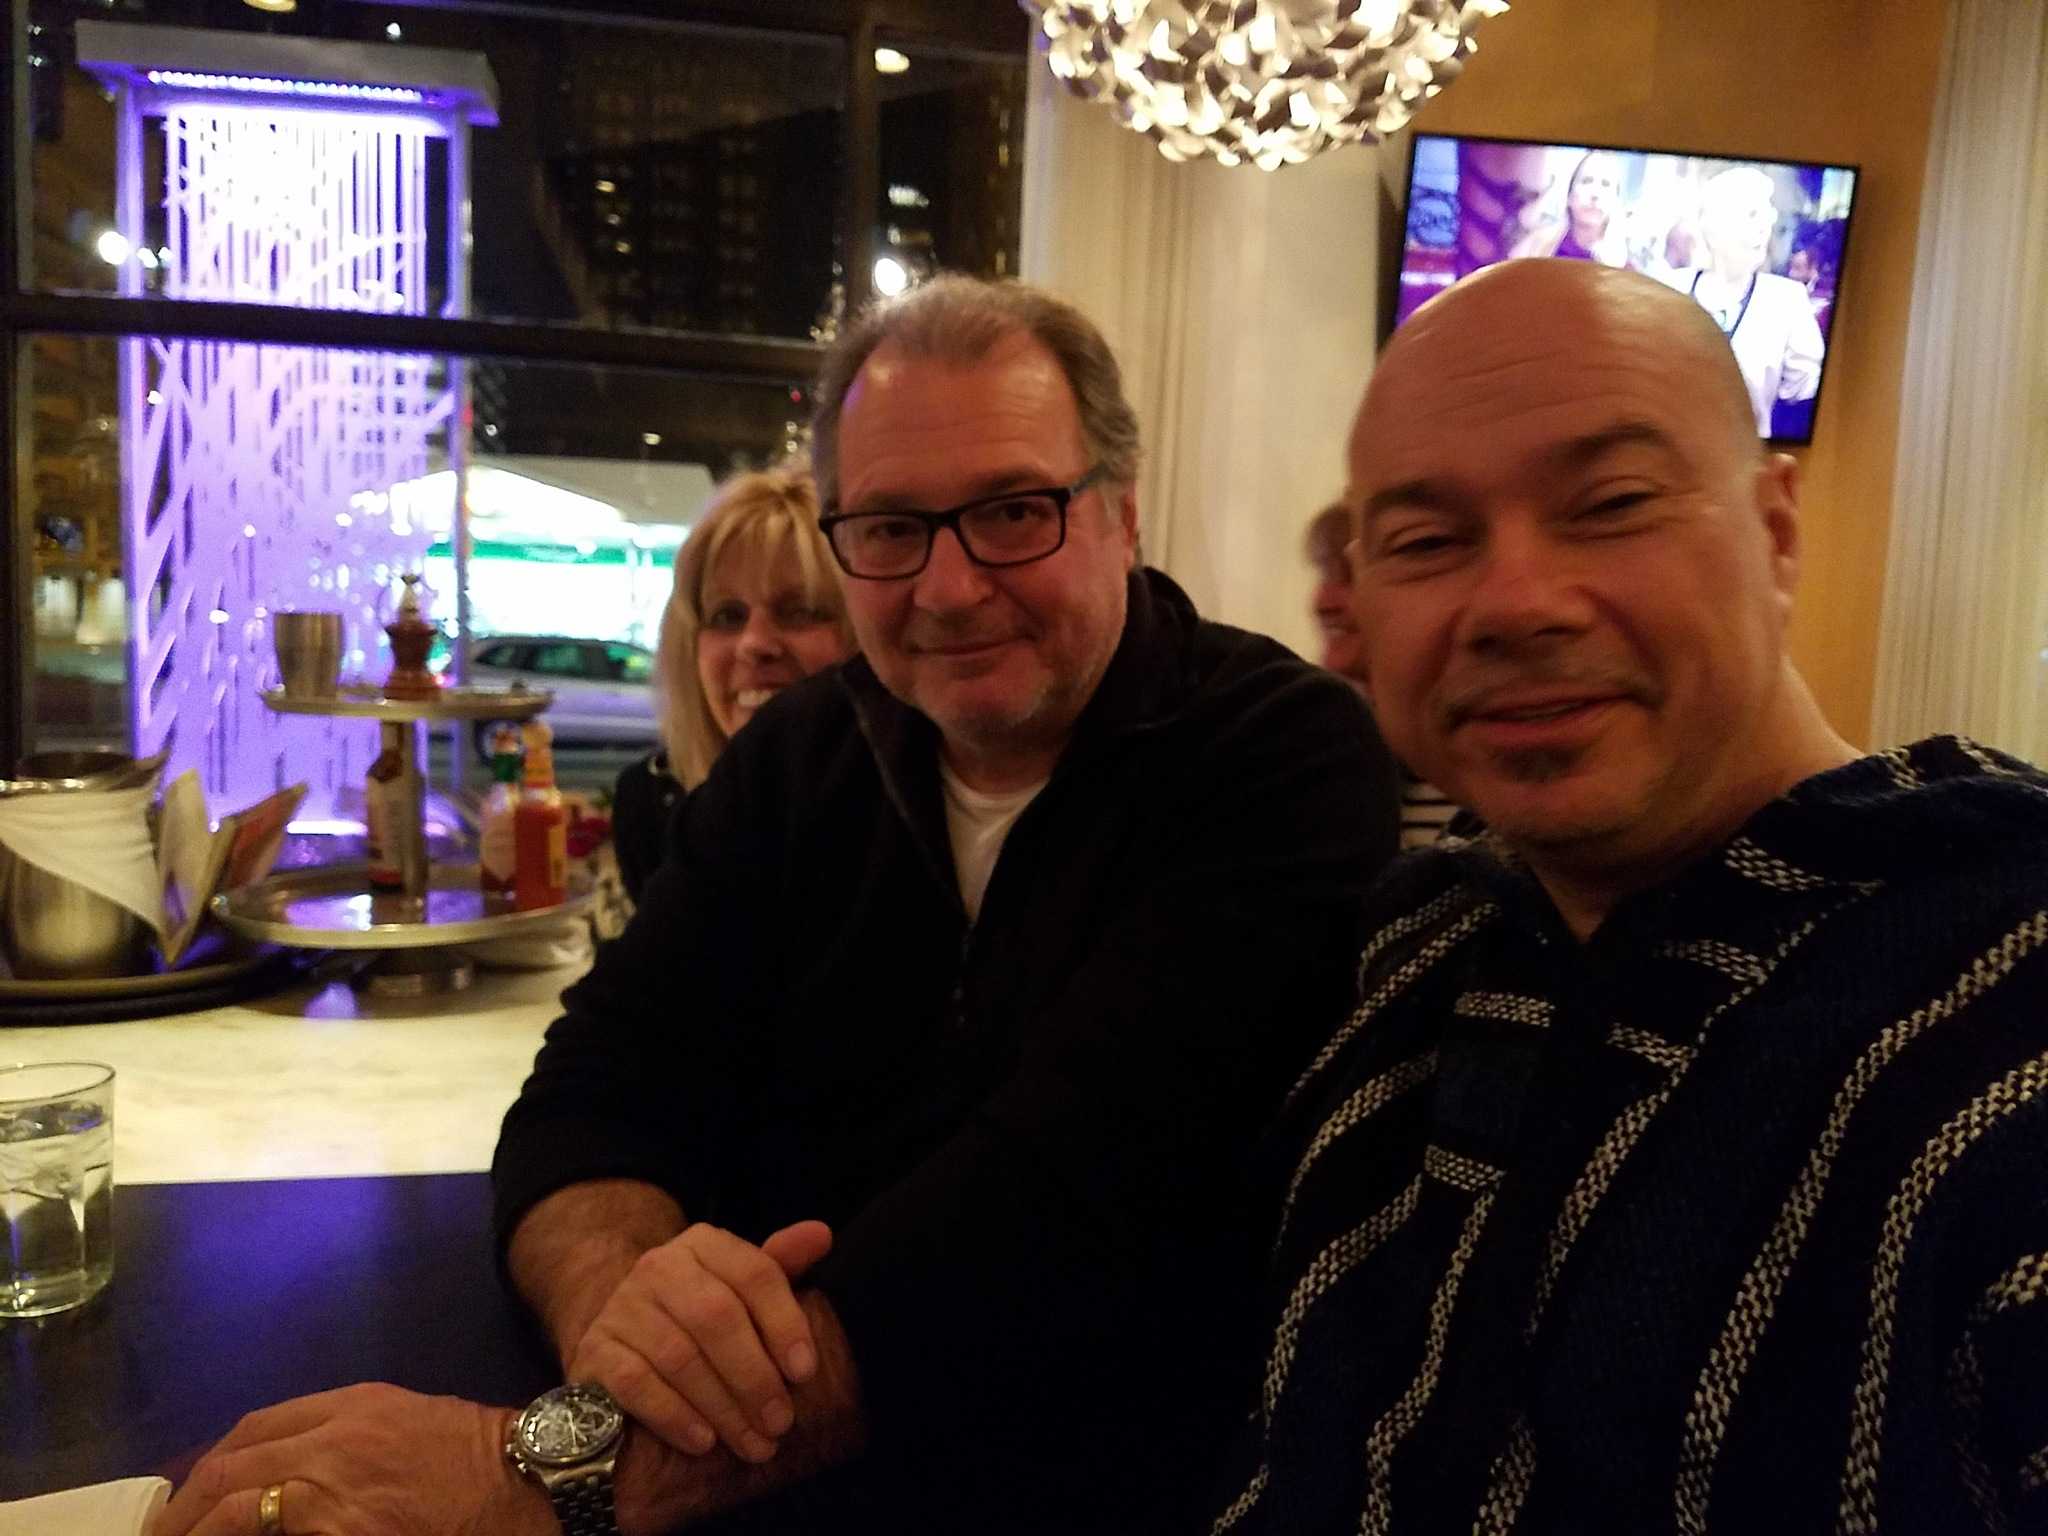 Meeting Kevin Dunn at Meli's on S Dearborn by Brian Murray